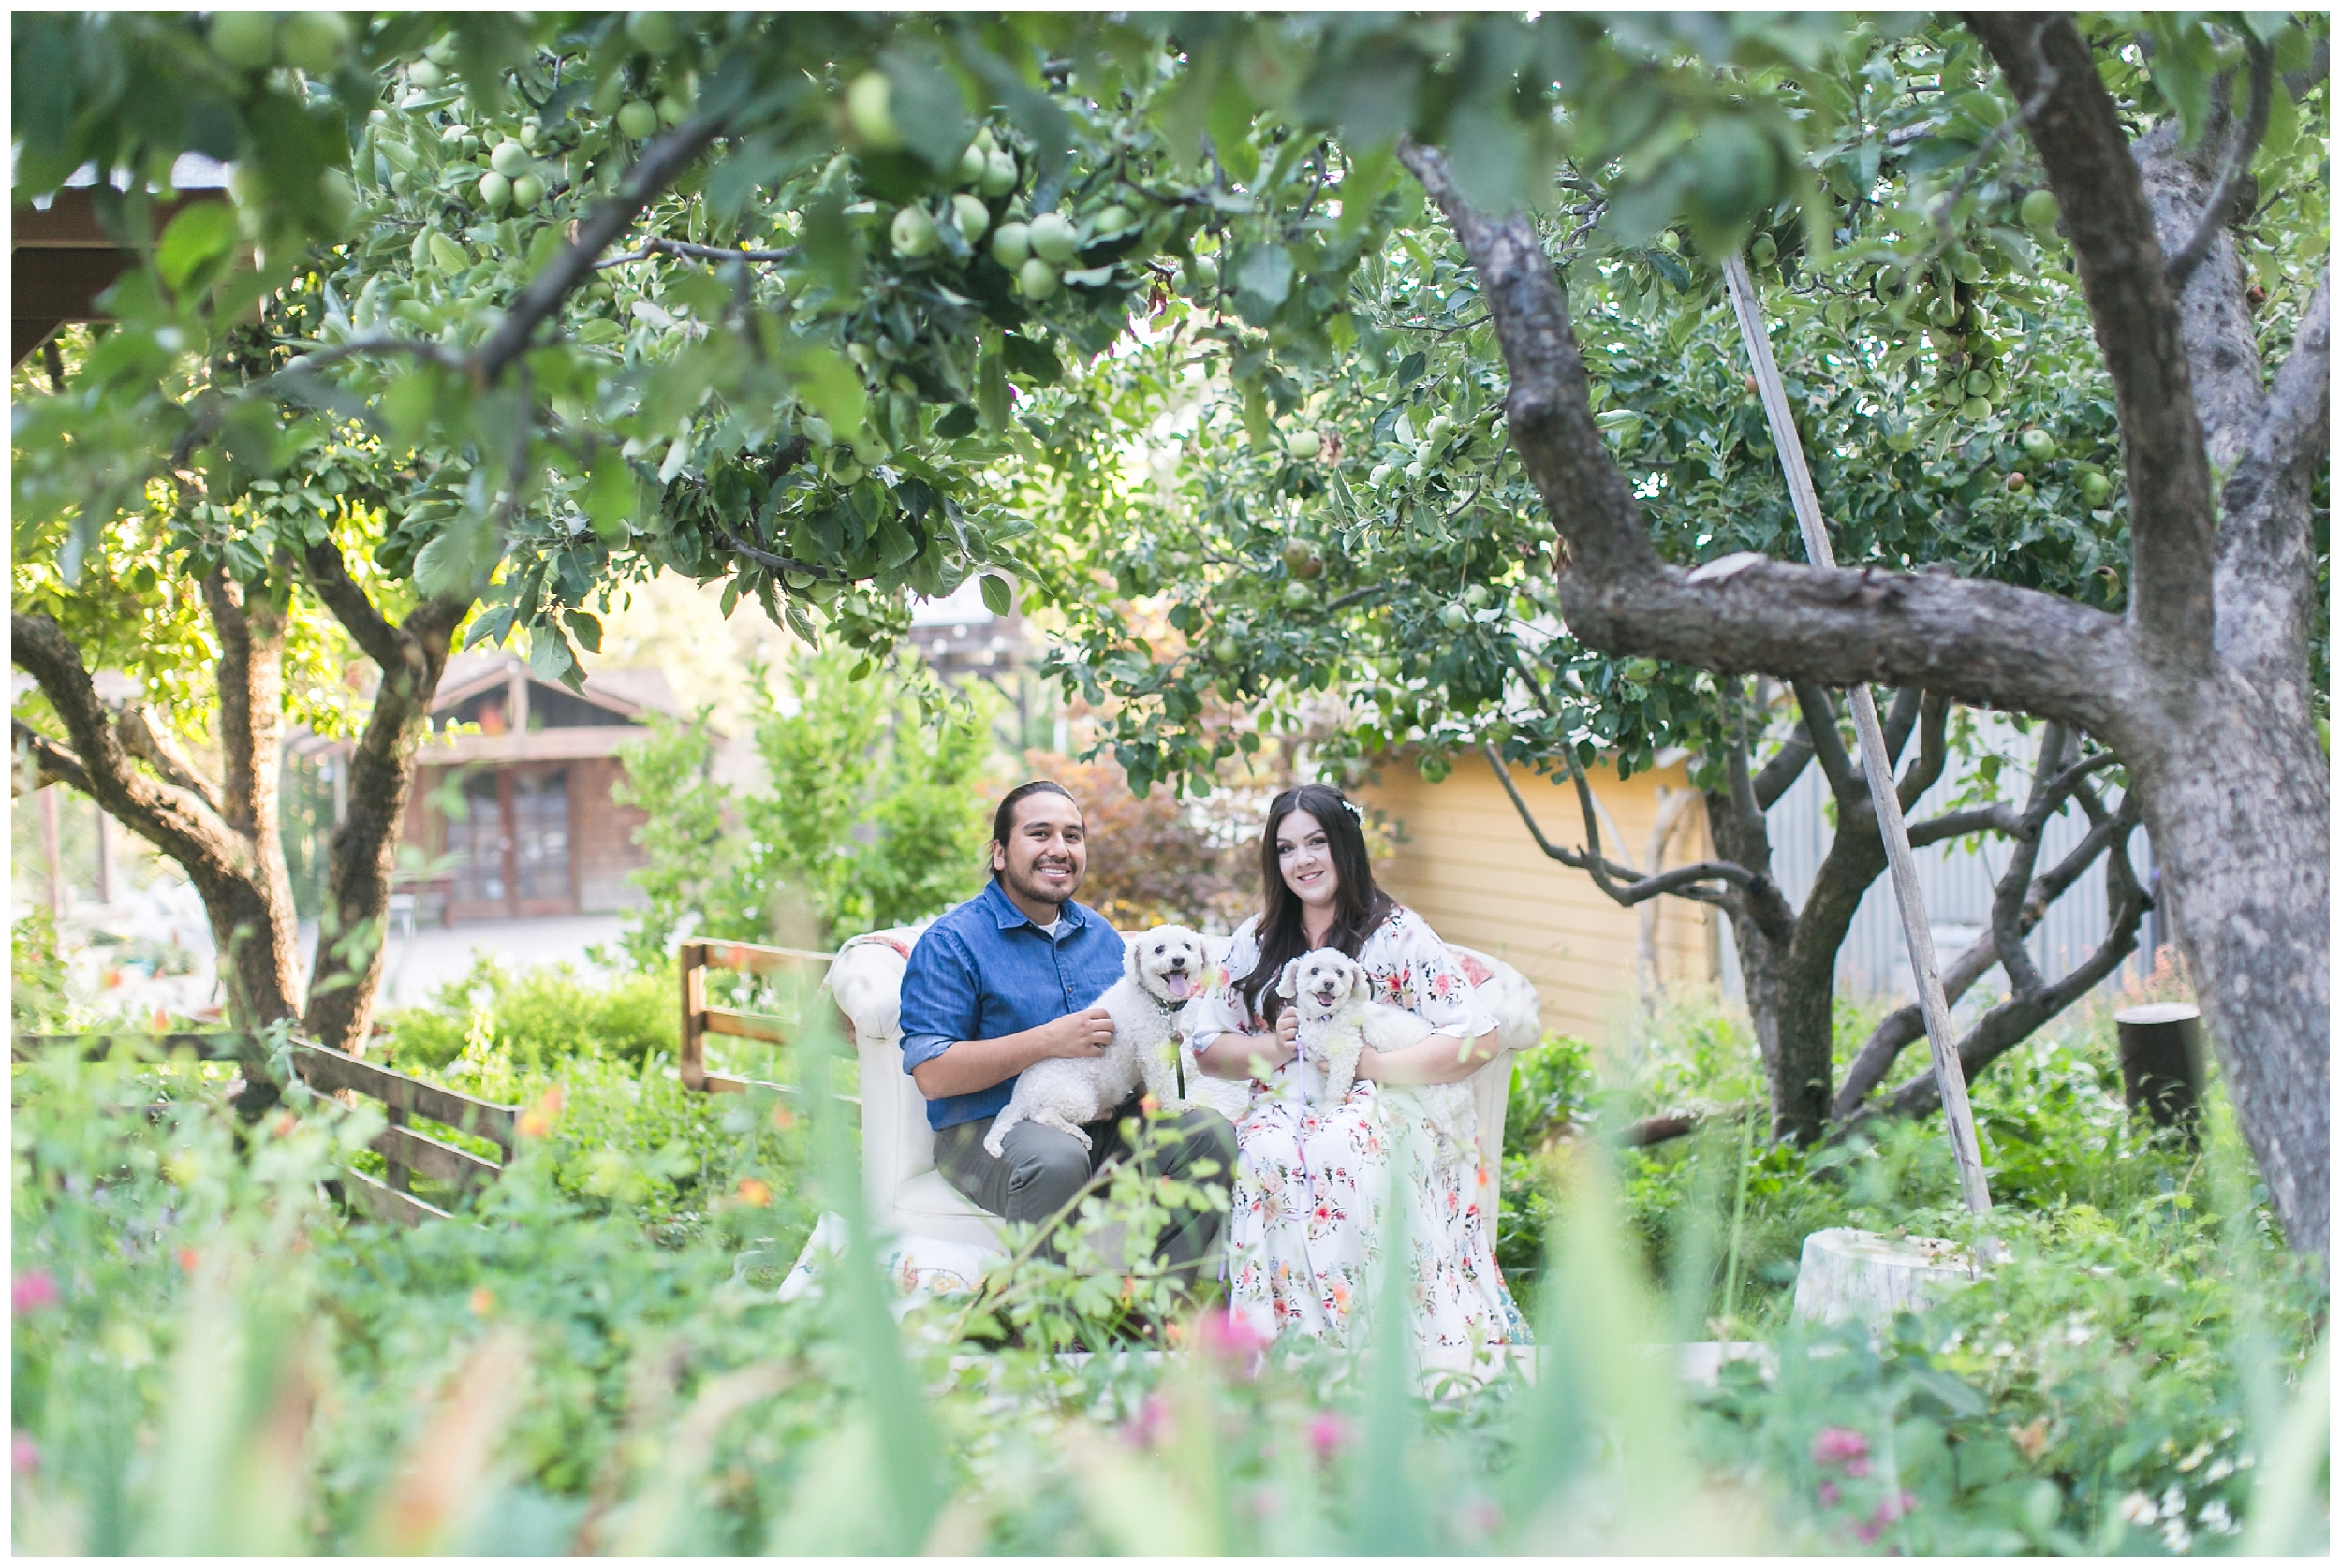 engaged-couple-sitting-on-couch-with-dogs-under-apple-trees-homestead-oak-glen-carrie-vines-001.jpg